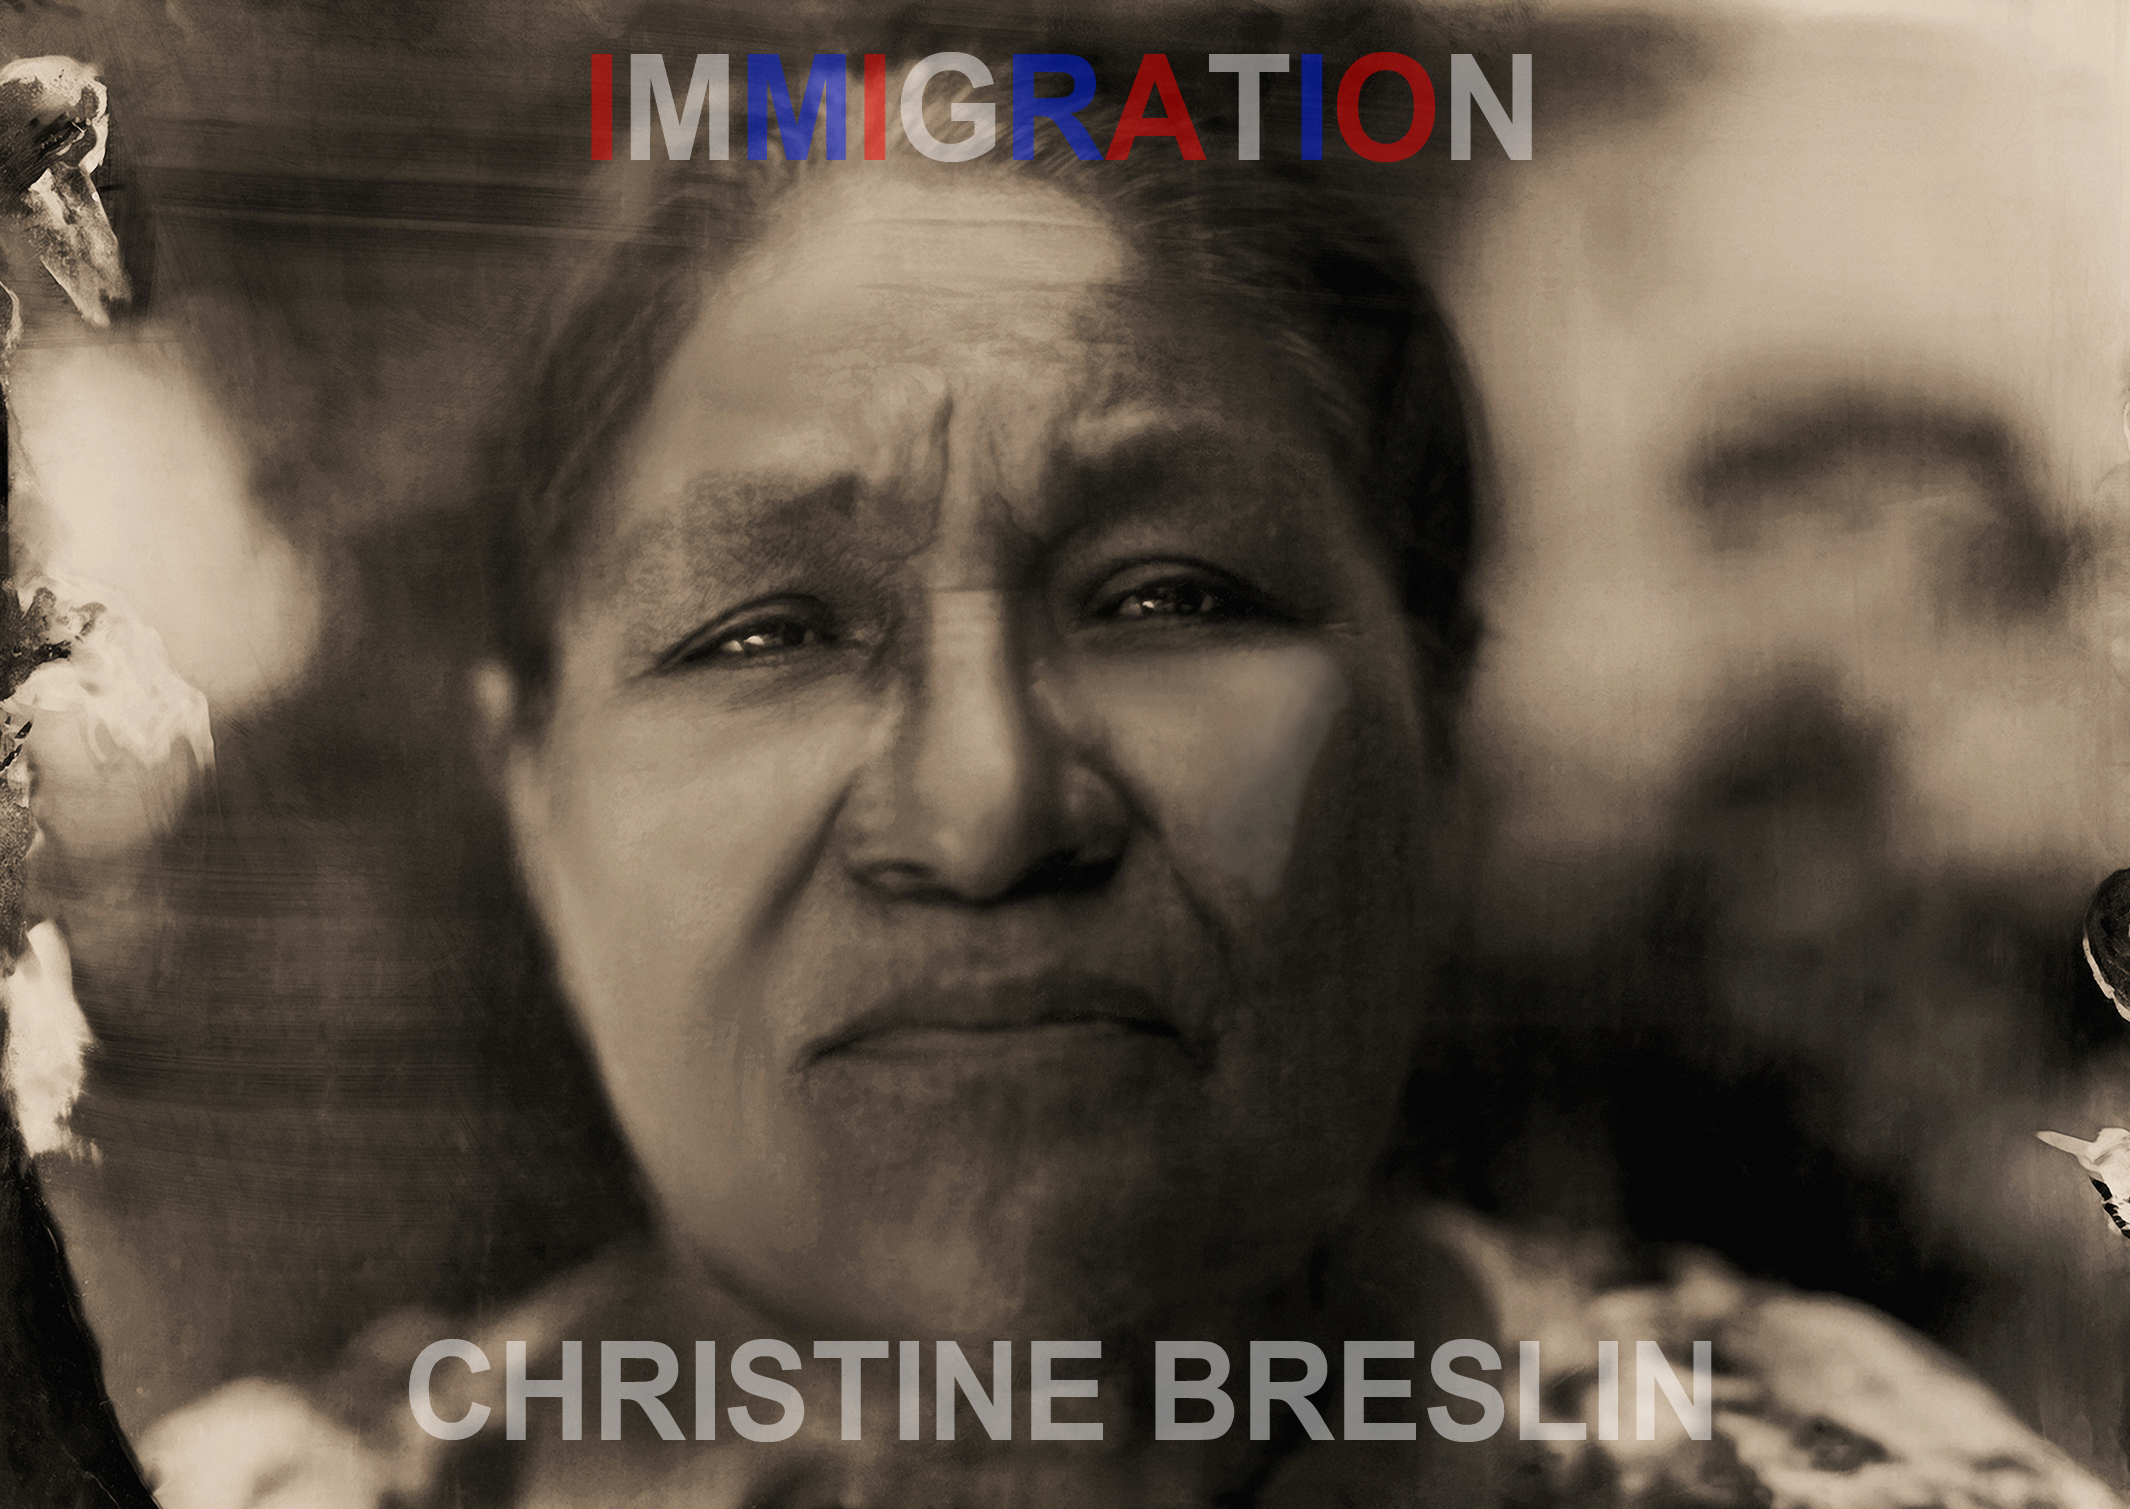 Sepia-toned photographic portrait of woman with blurred background, superimposed with the word Immigration on red, white and blue type and the artist name